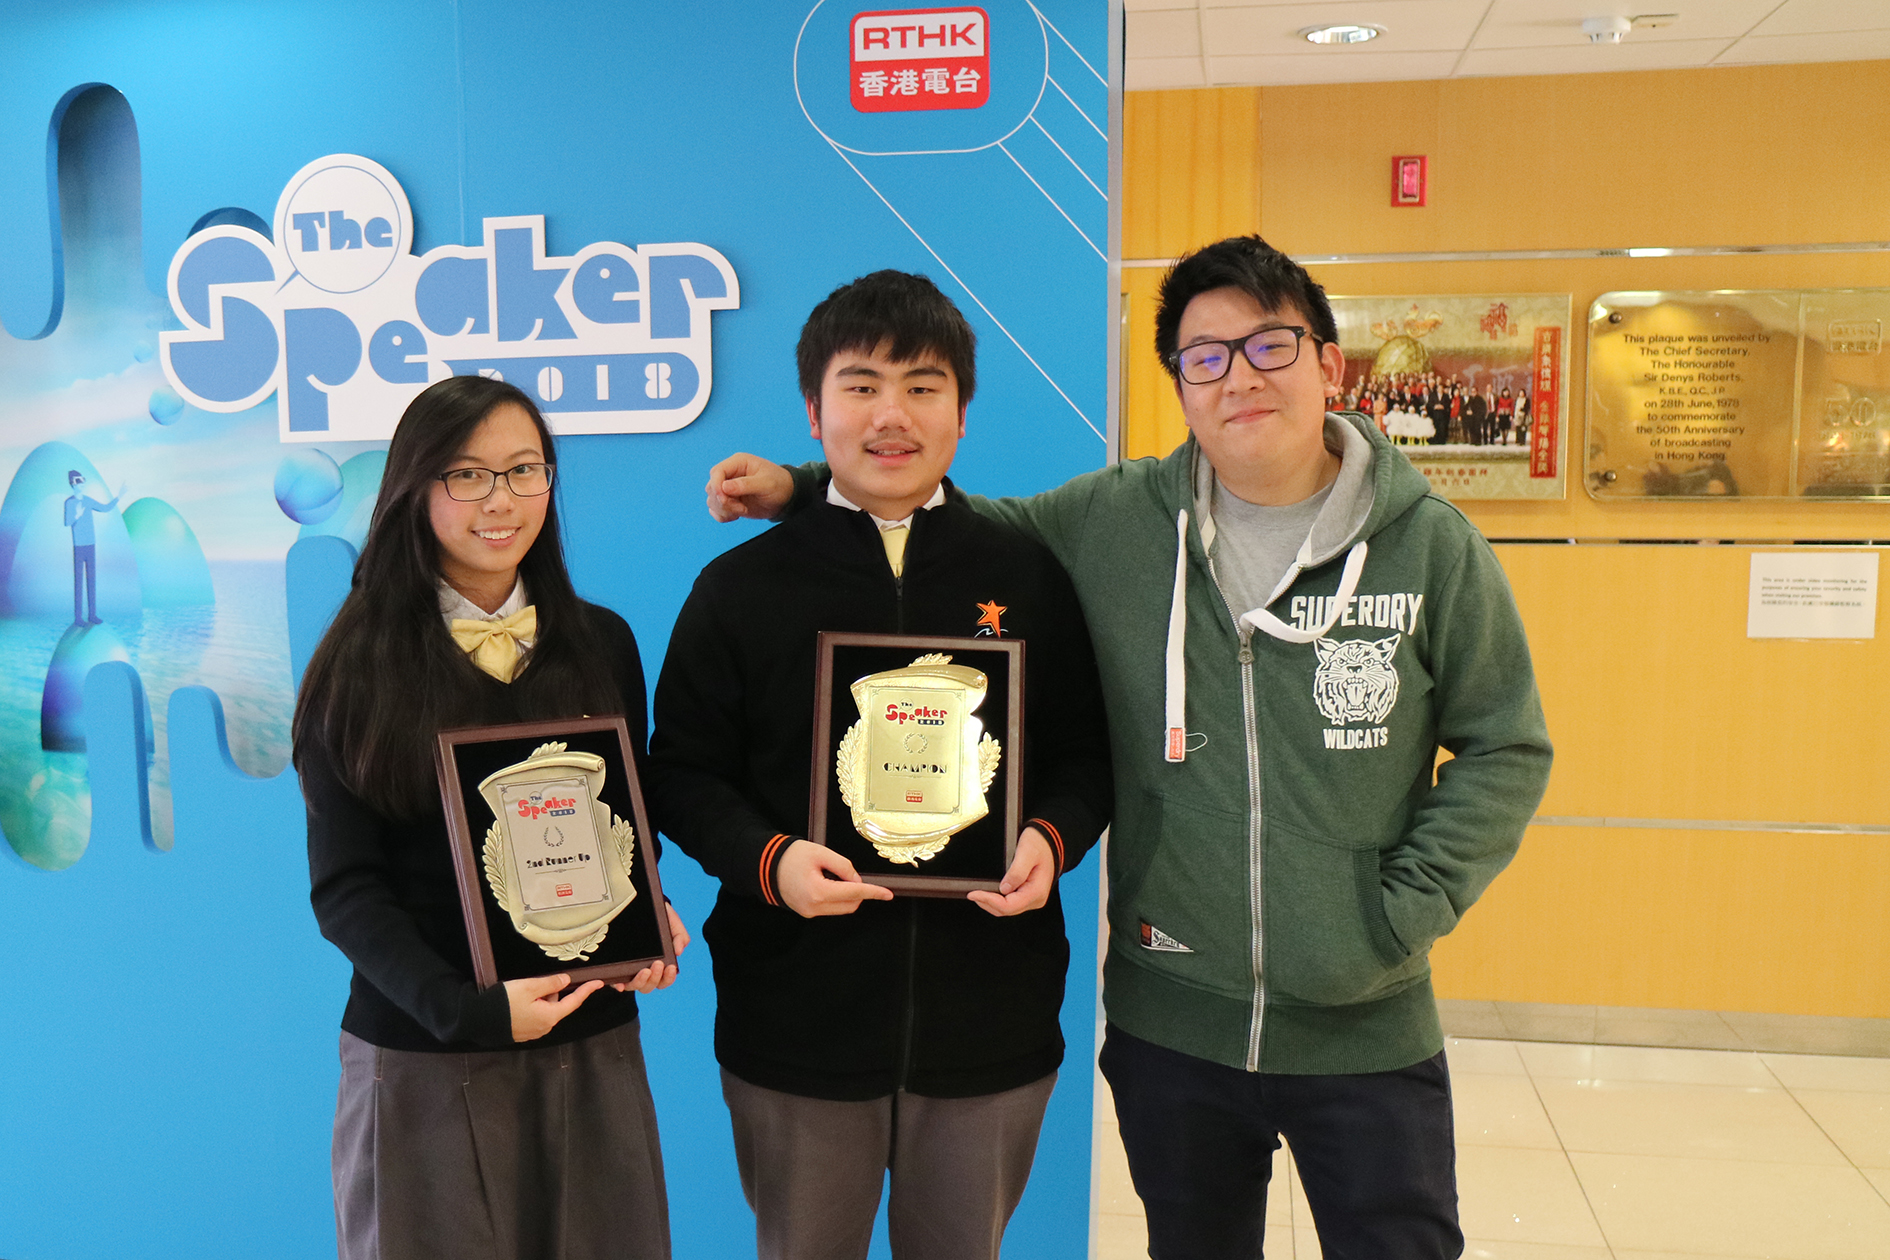 From left: Miss Amber Mak, Mr. Michael Young and Mr. Benjamin Ching